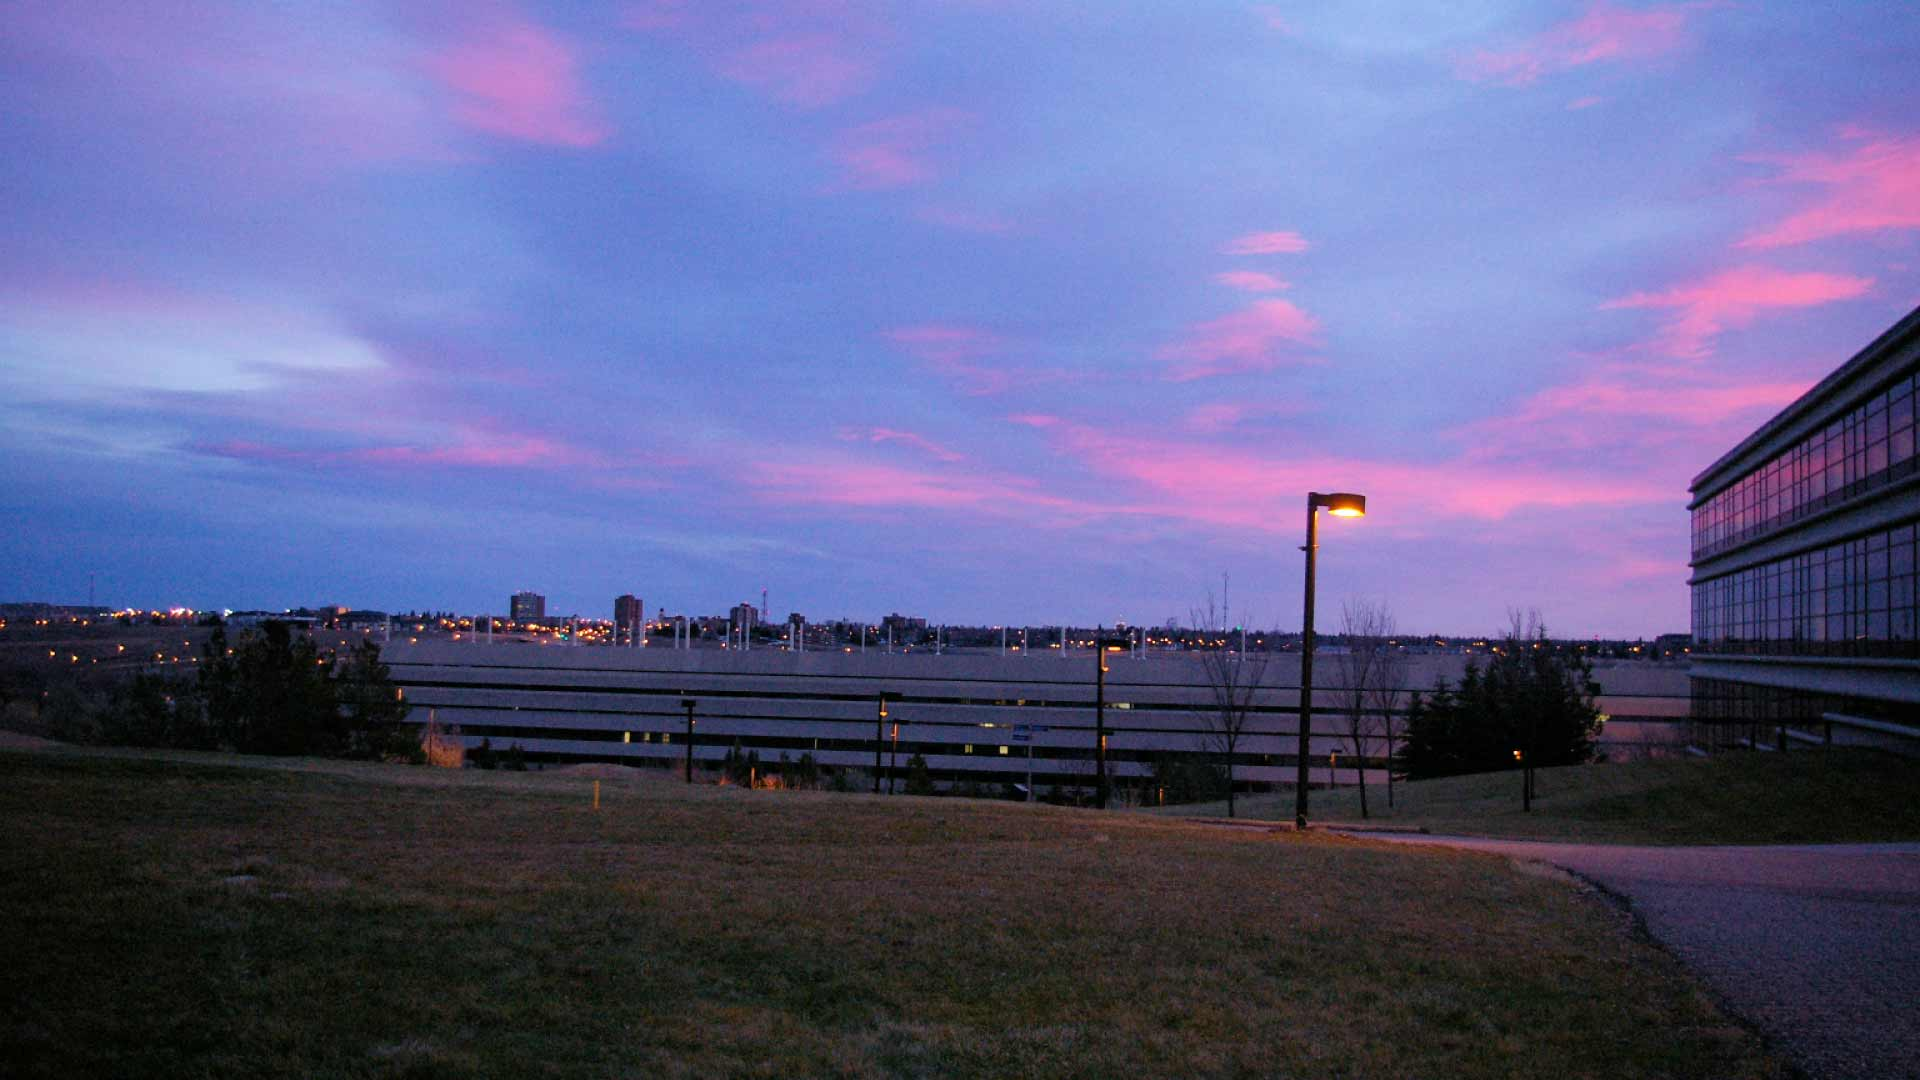 Pink and blue skies over the University of Lethbridge at sunset